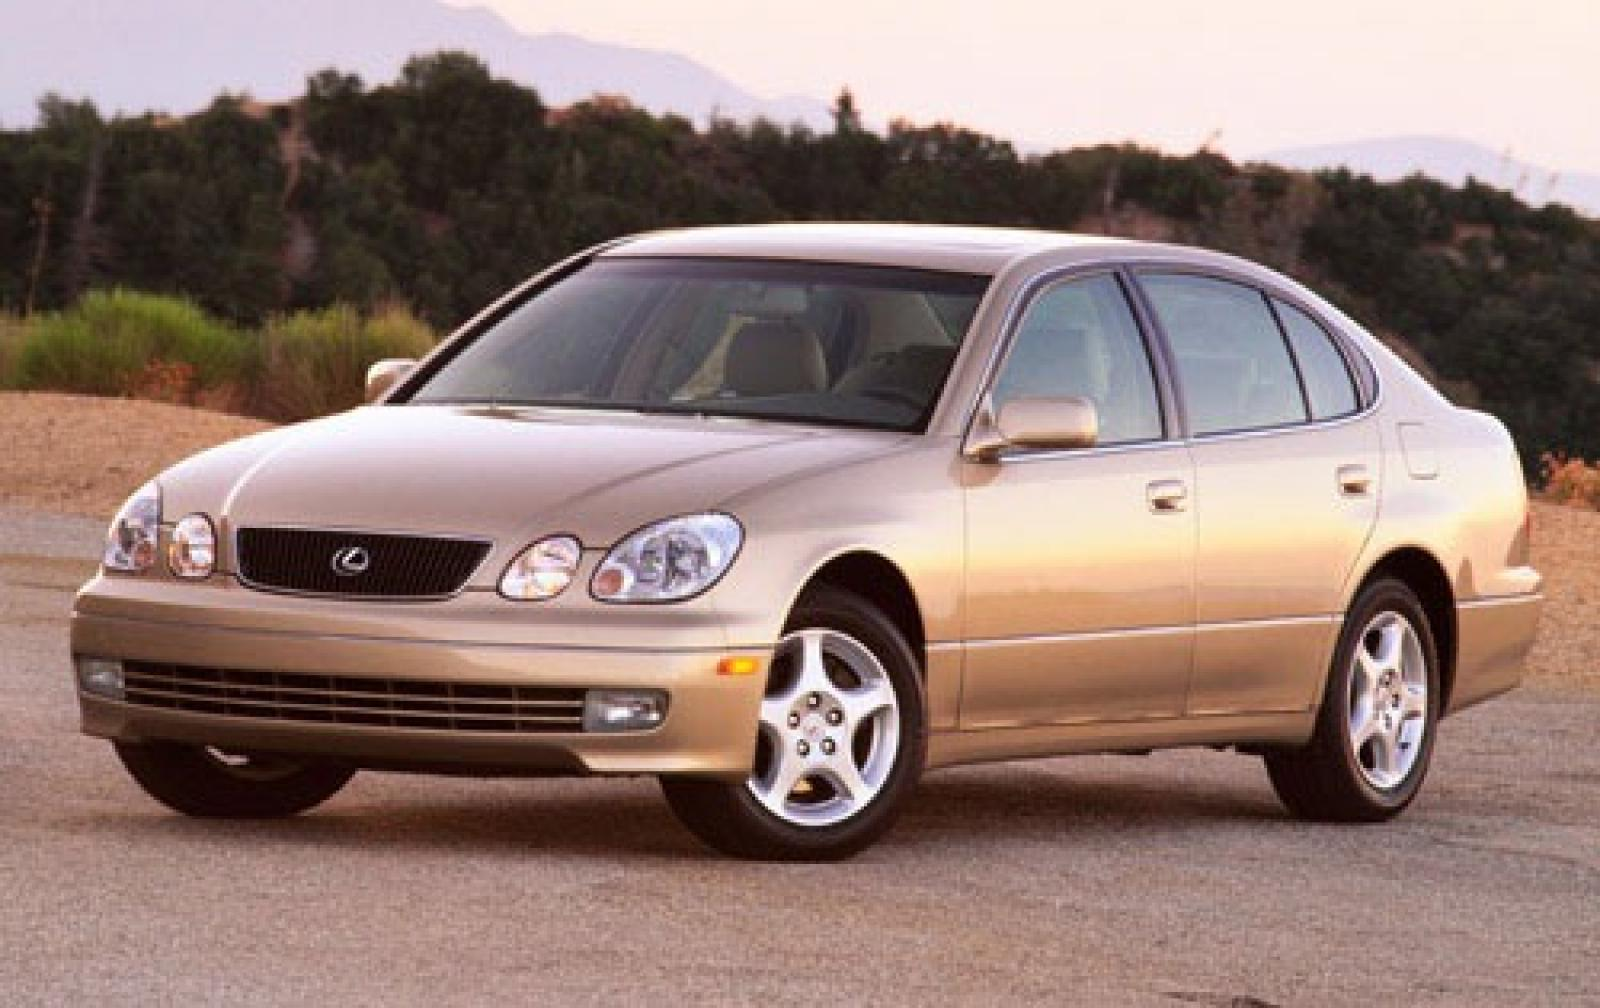 2001 lexus gs 300 - information and photos - zombiedrive